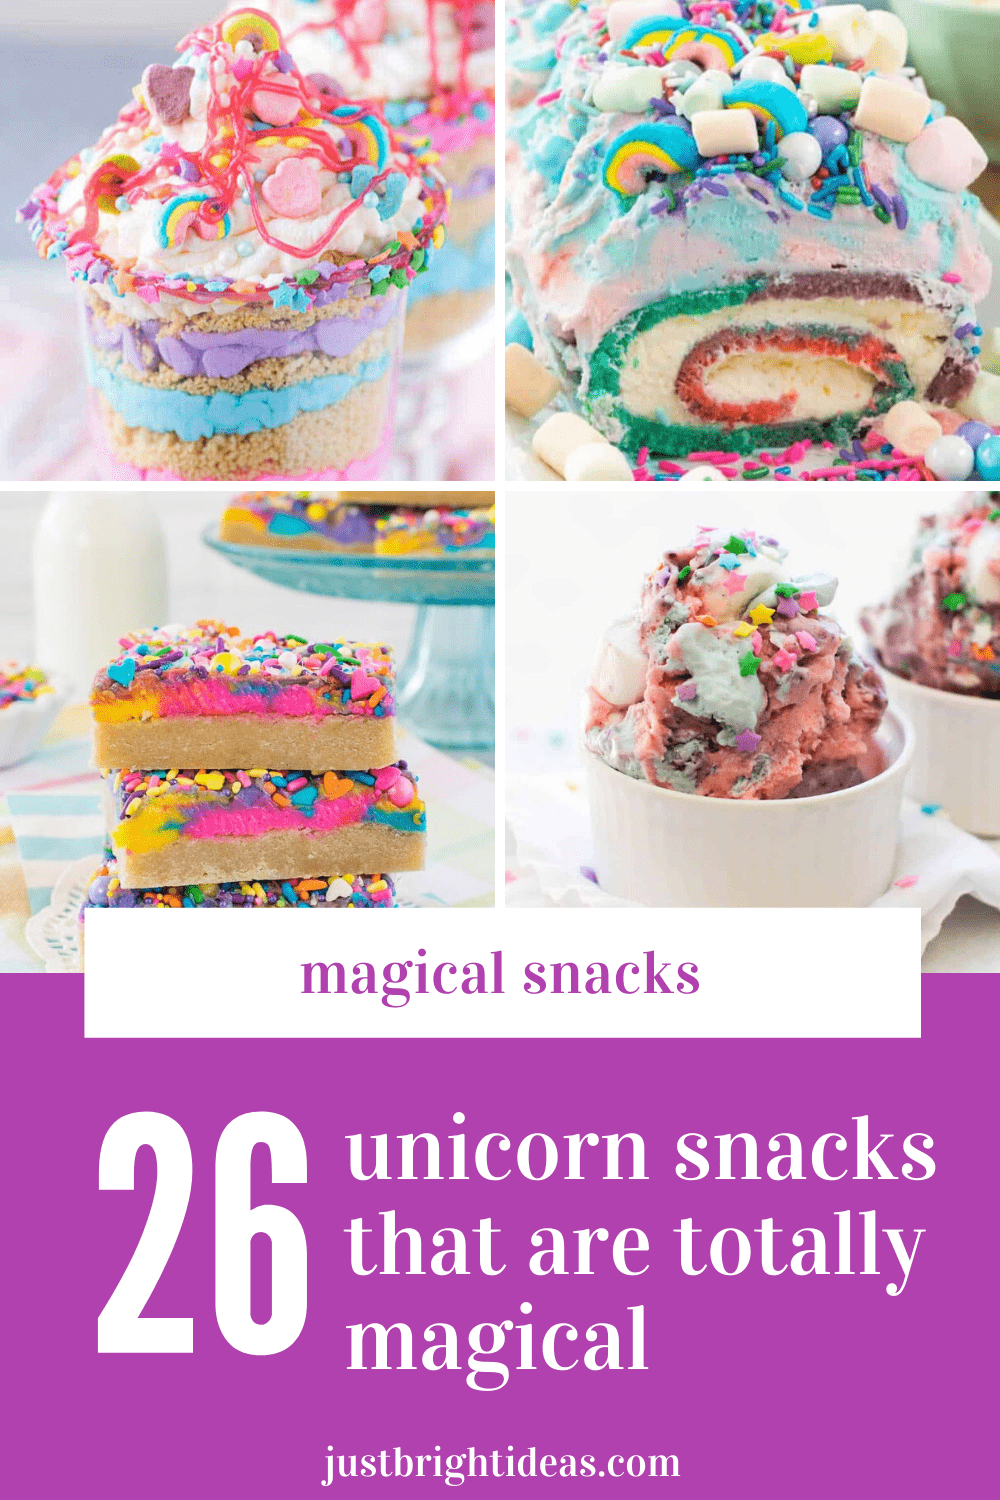 Wow! These unicorn snacks are so magical - perfect for summer snacks and parties!